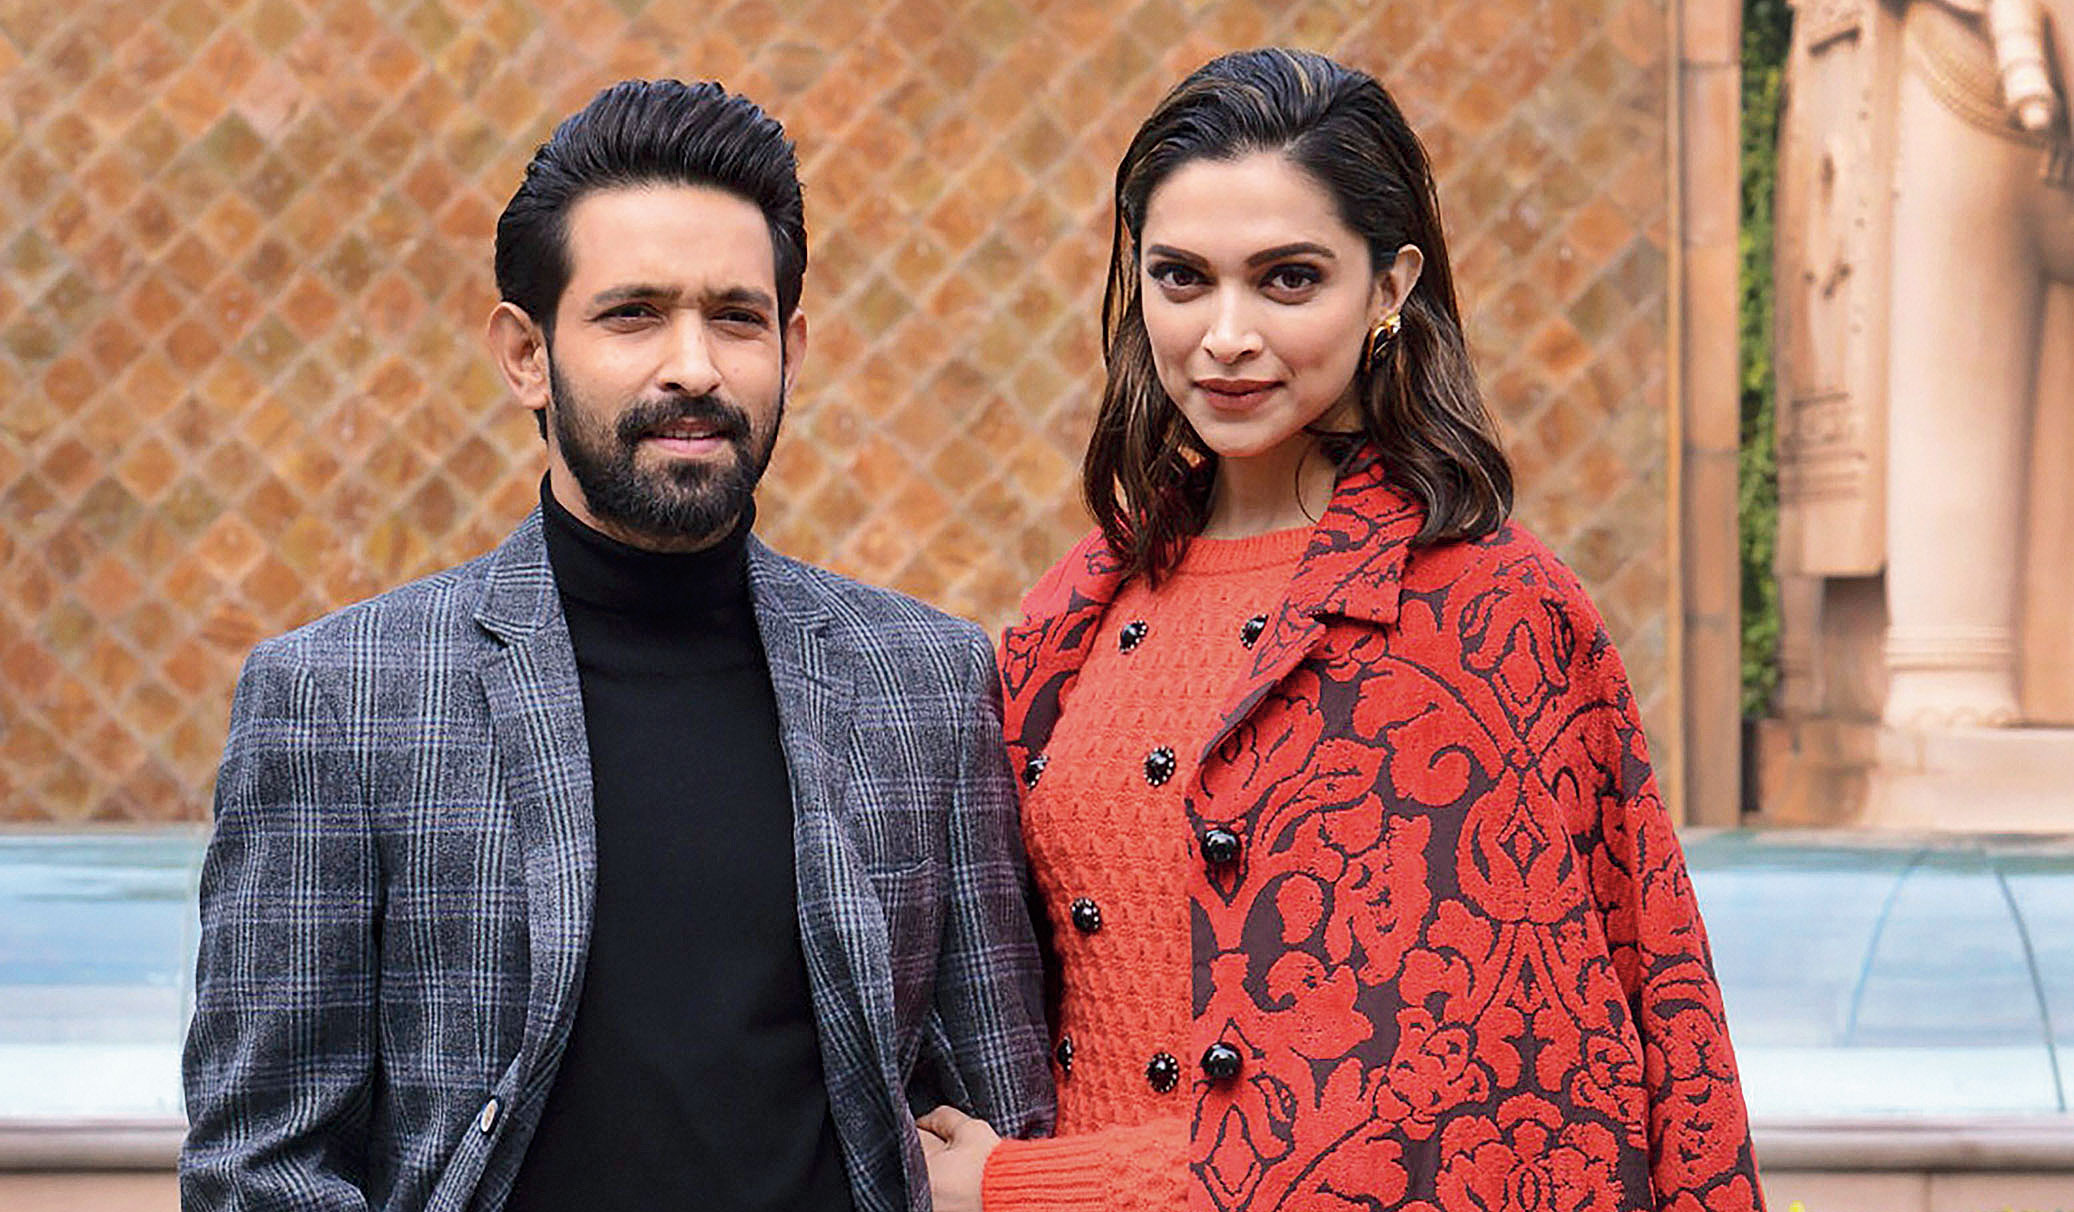 Deepika Padukone and Vikrant Massey in the run-up to the release of Chhapaak.